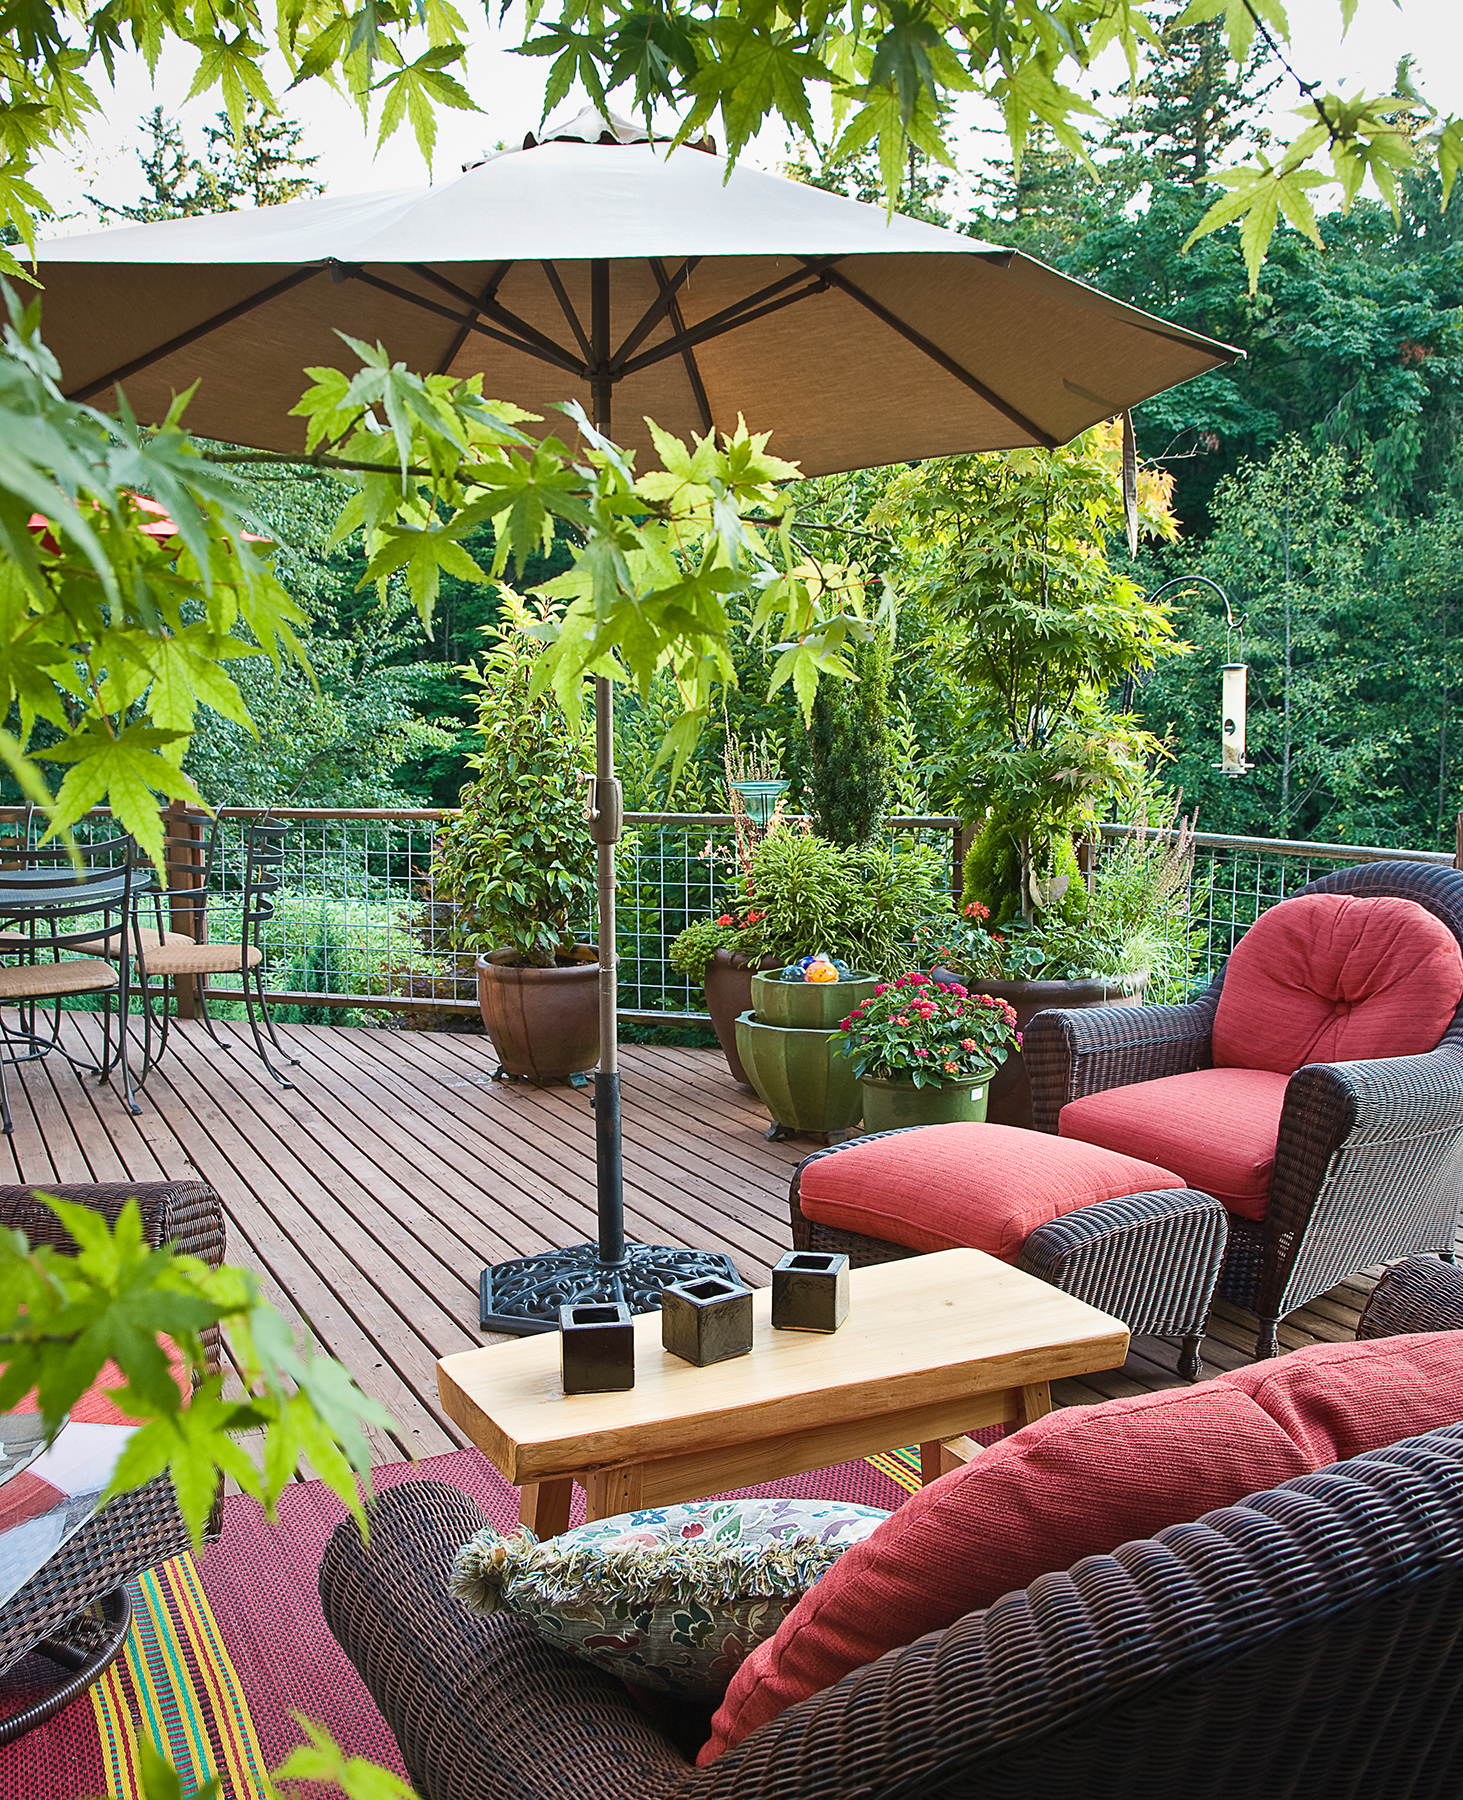 Define outdoor space by using an umbrella